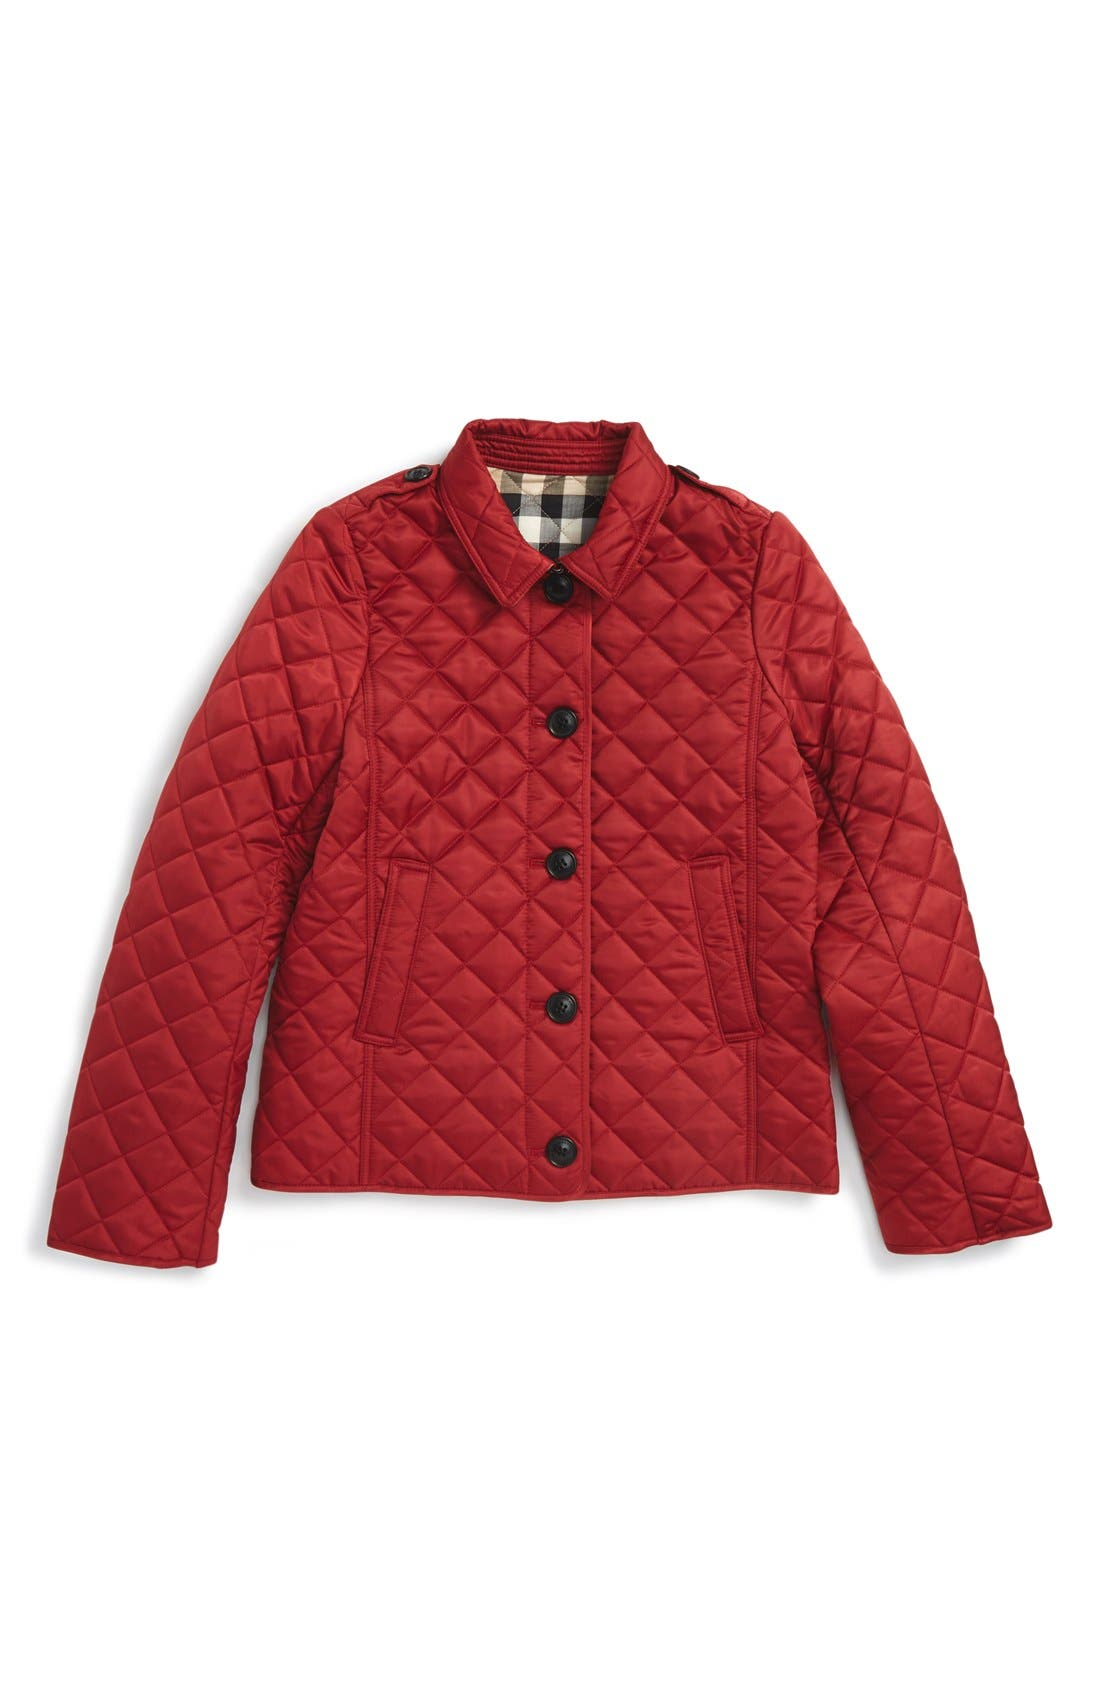 'Mini Ashurst' Quilted Jacket,                         Main,                         color, Parade Red